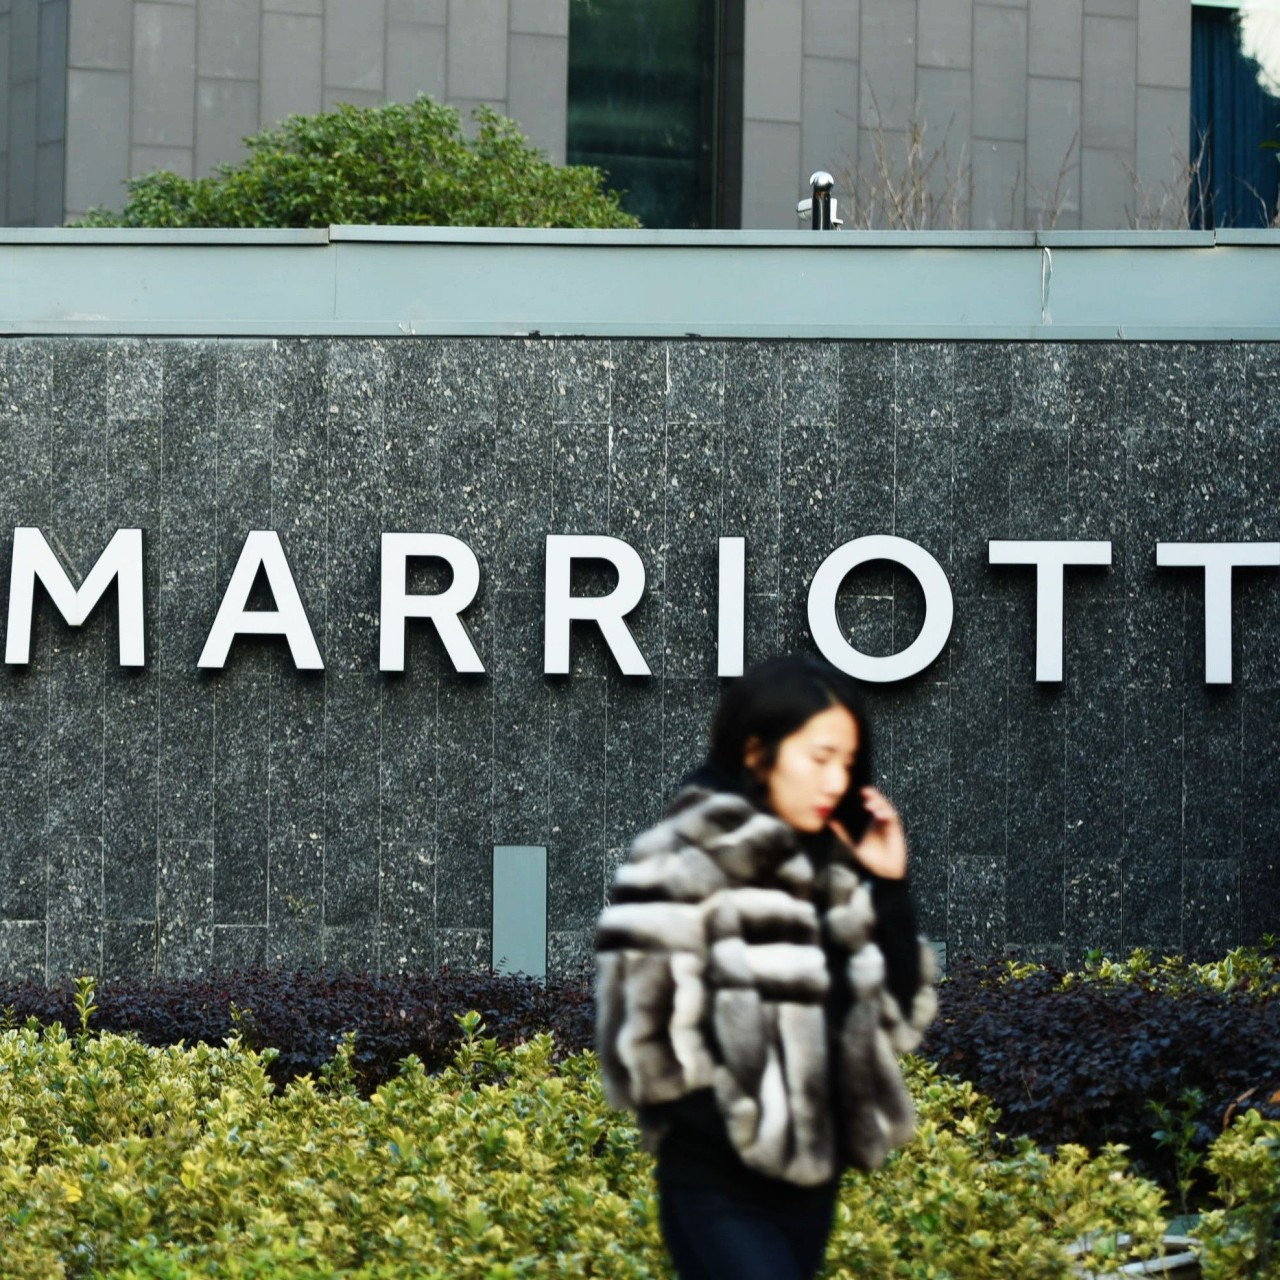 US hotel giant Marriott's goal of 1,000 properties by 2020 in Asia